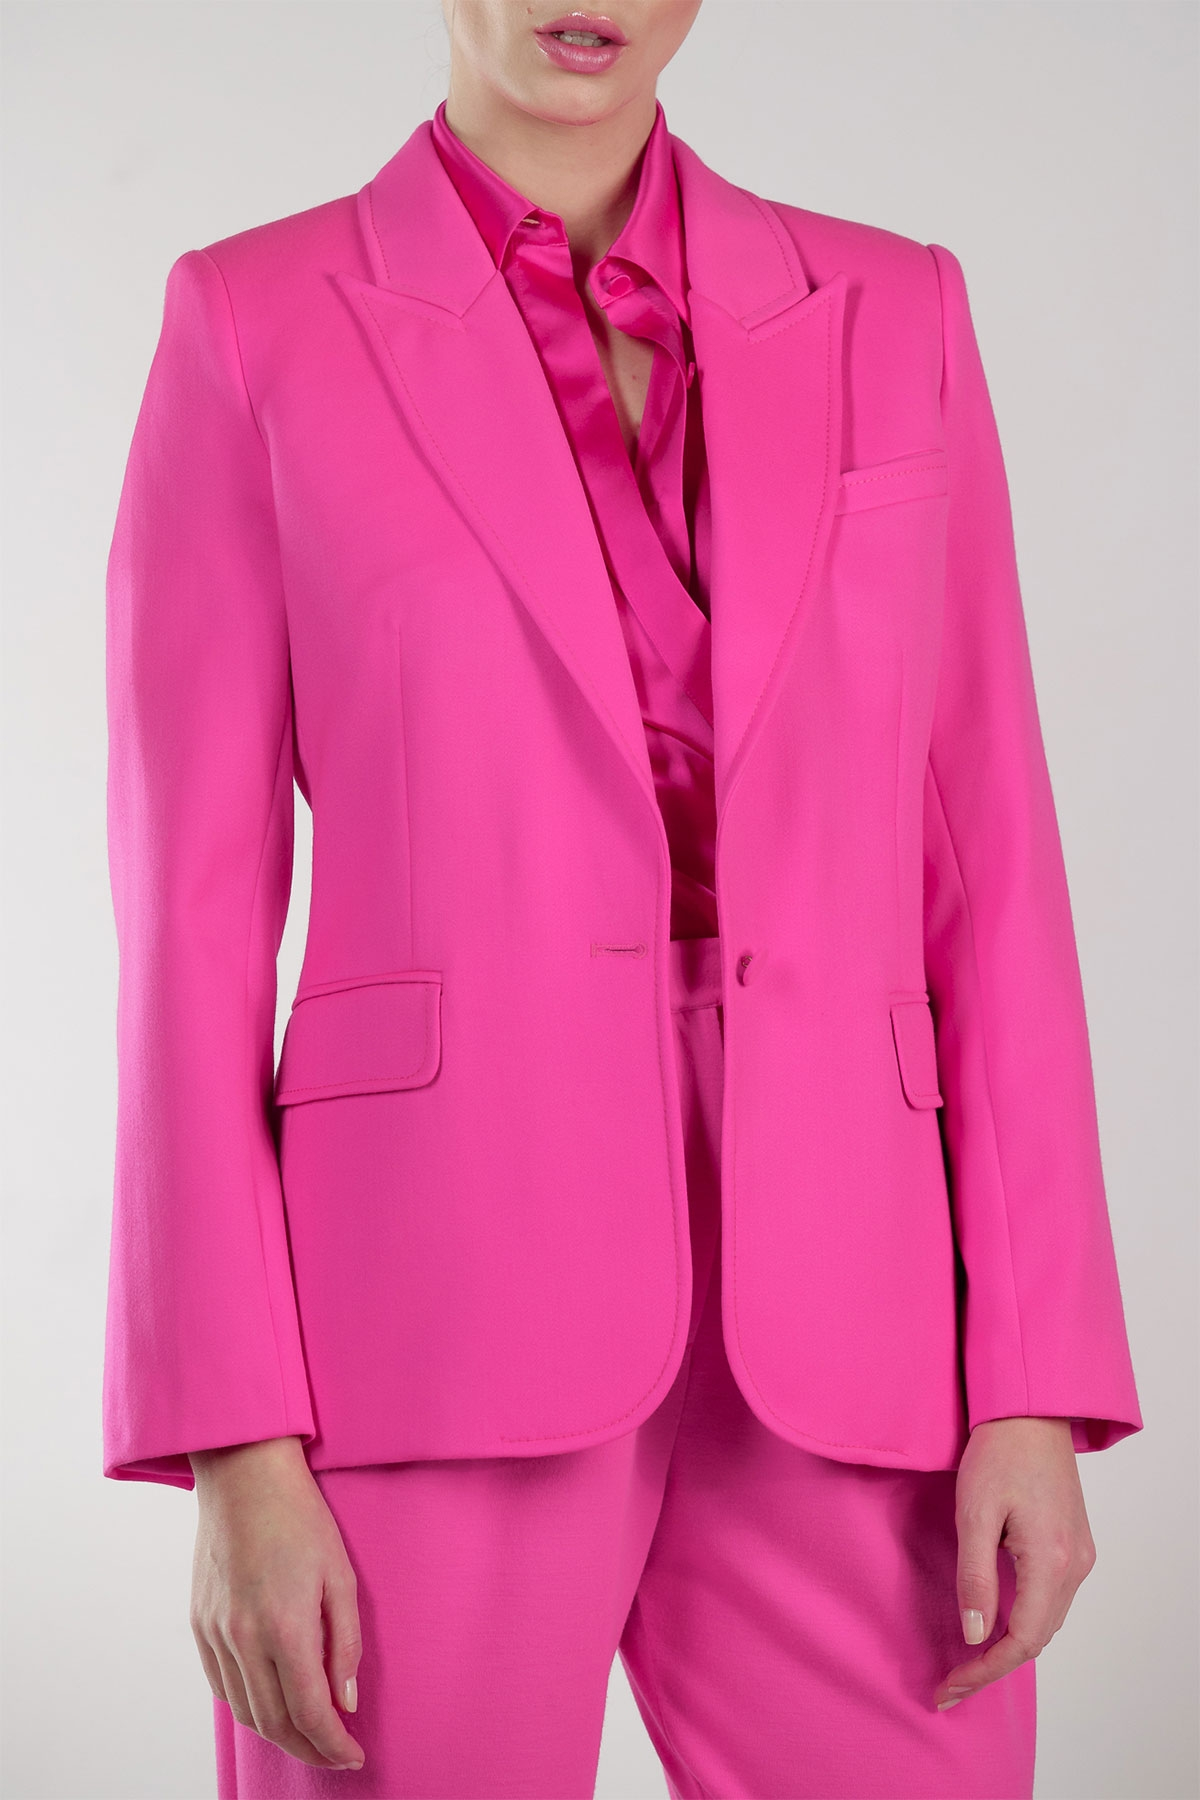 Shop the latest styles of Womens Pink Coats at Macys. Check out our designer collection of chic coats including peacoats, trench coats, puffer coats and more! Macy's Presents: The Edit - A curated mix of fashion and inspiration Check It Out.